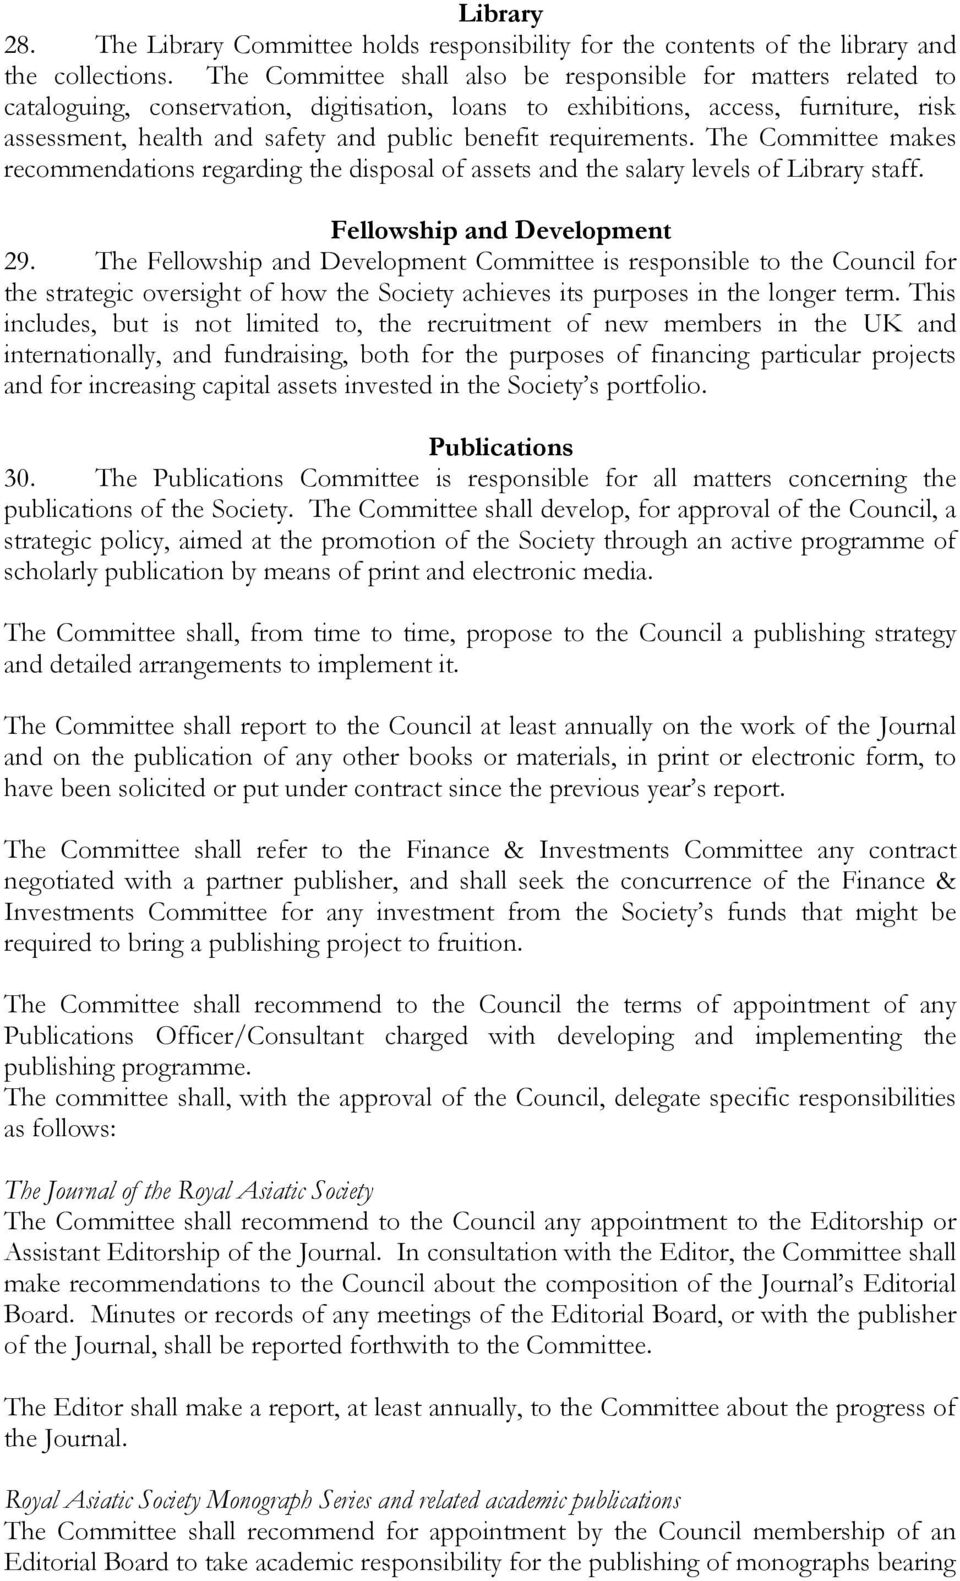 requirements. The Committee makes recommendations regarding the disposal of assets and the salary levels of Library staff. Fellowship and Development 29.